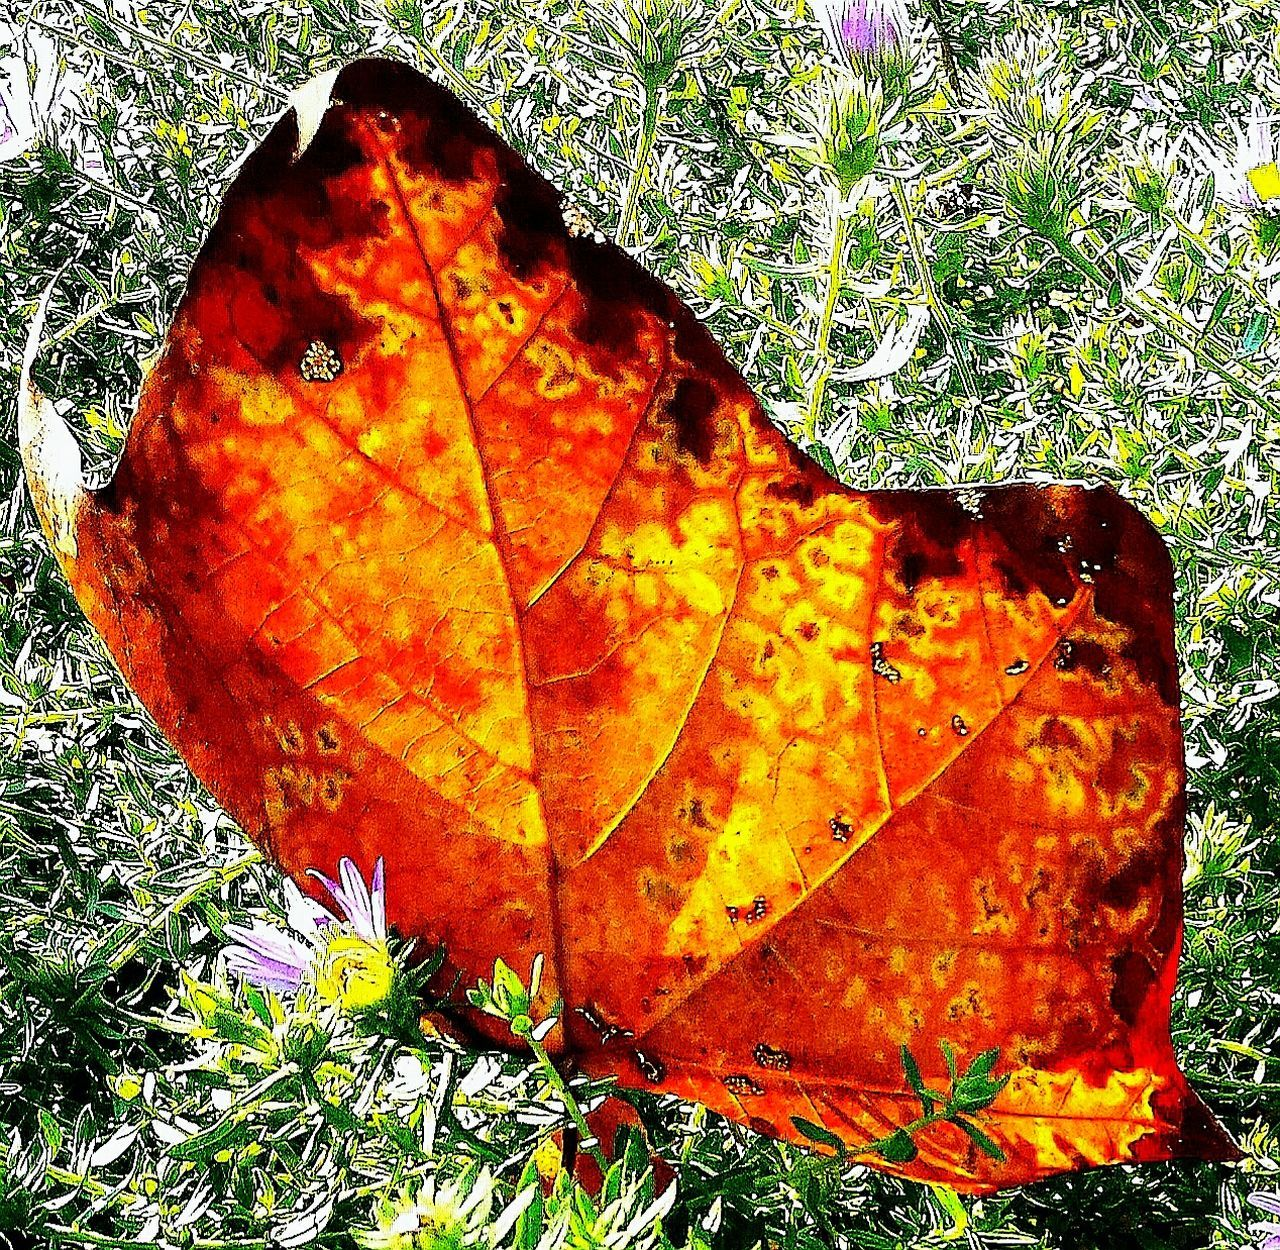 leaf, autumn, change, nature, dry, grass, close-up, day, outdoors, beauty in nature, maple leaf, no people, growth, plant, fragility, maple